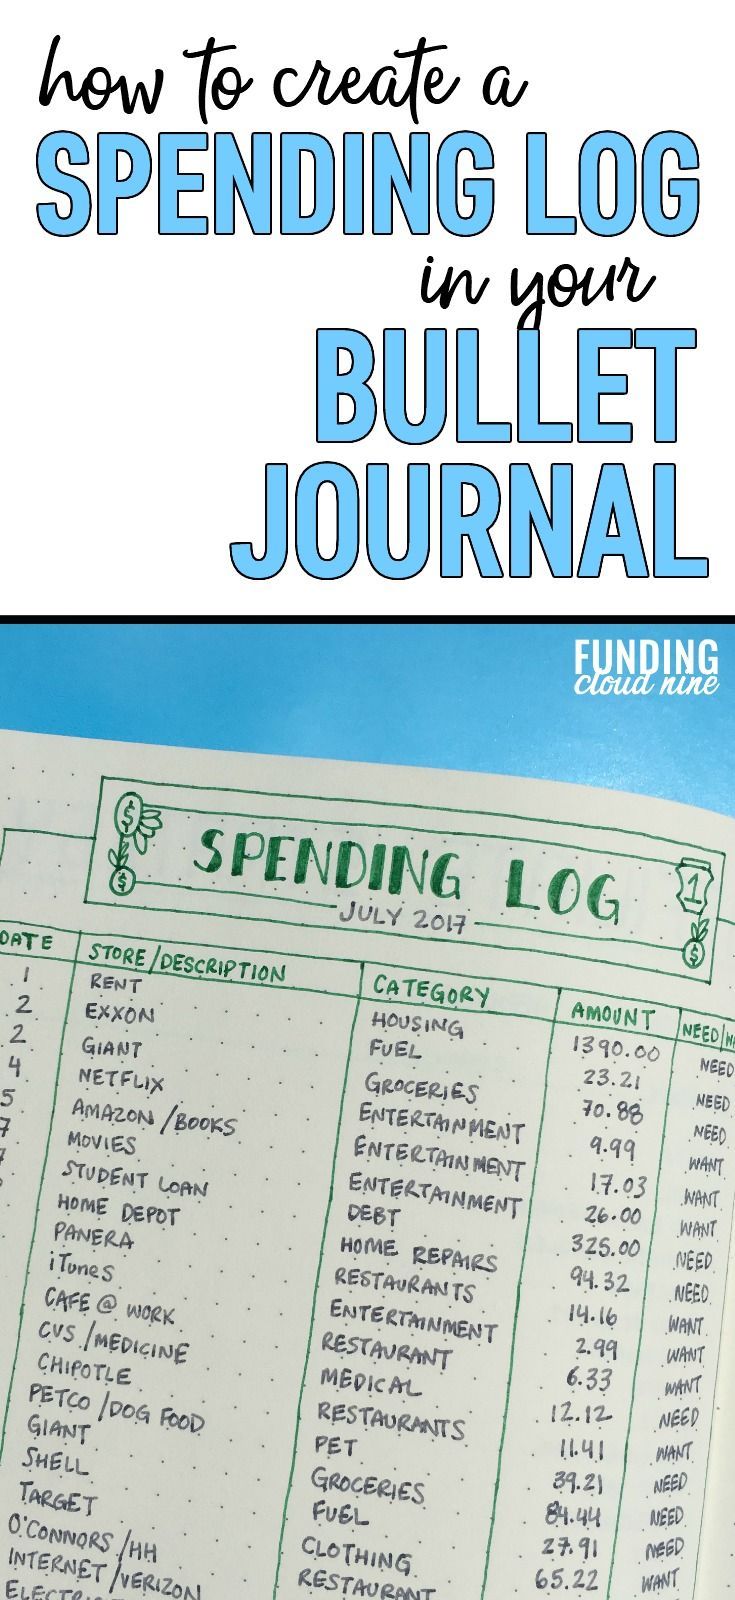 Learn how to create a spending log in your bullet journal and get some inspiration from my bujo spread!